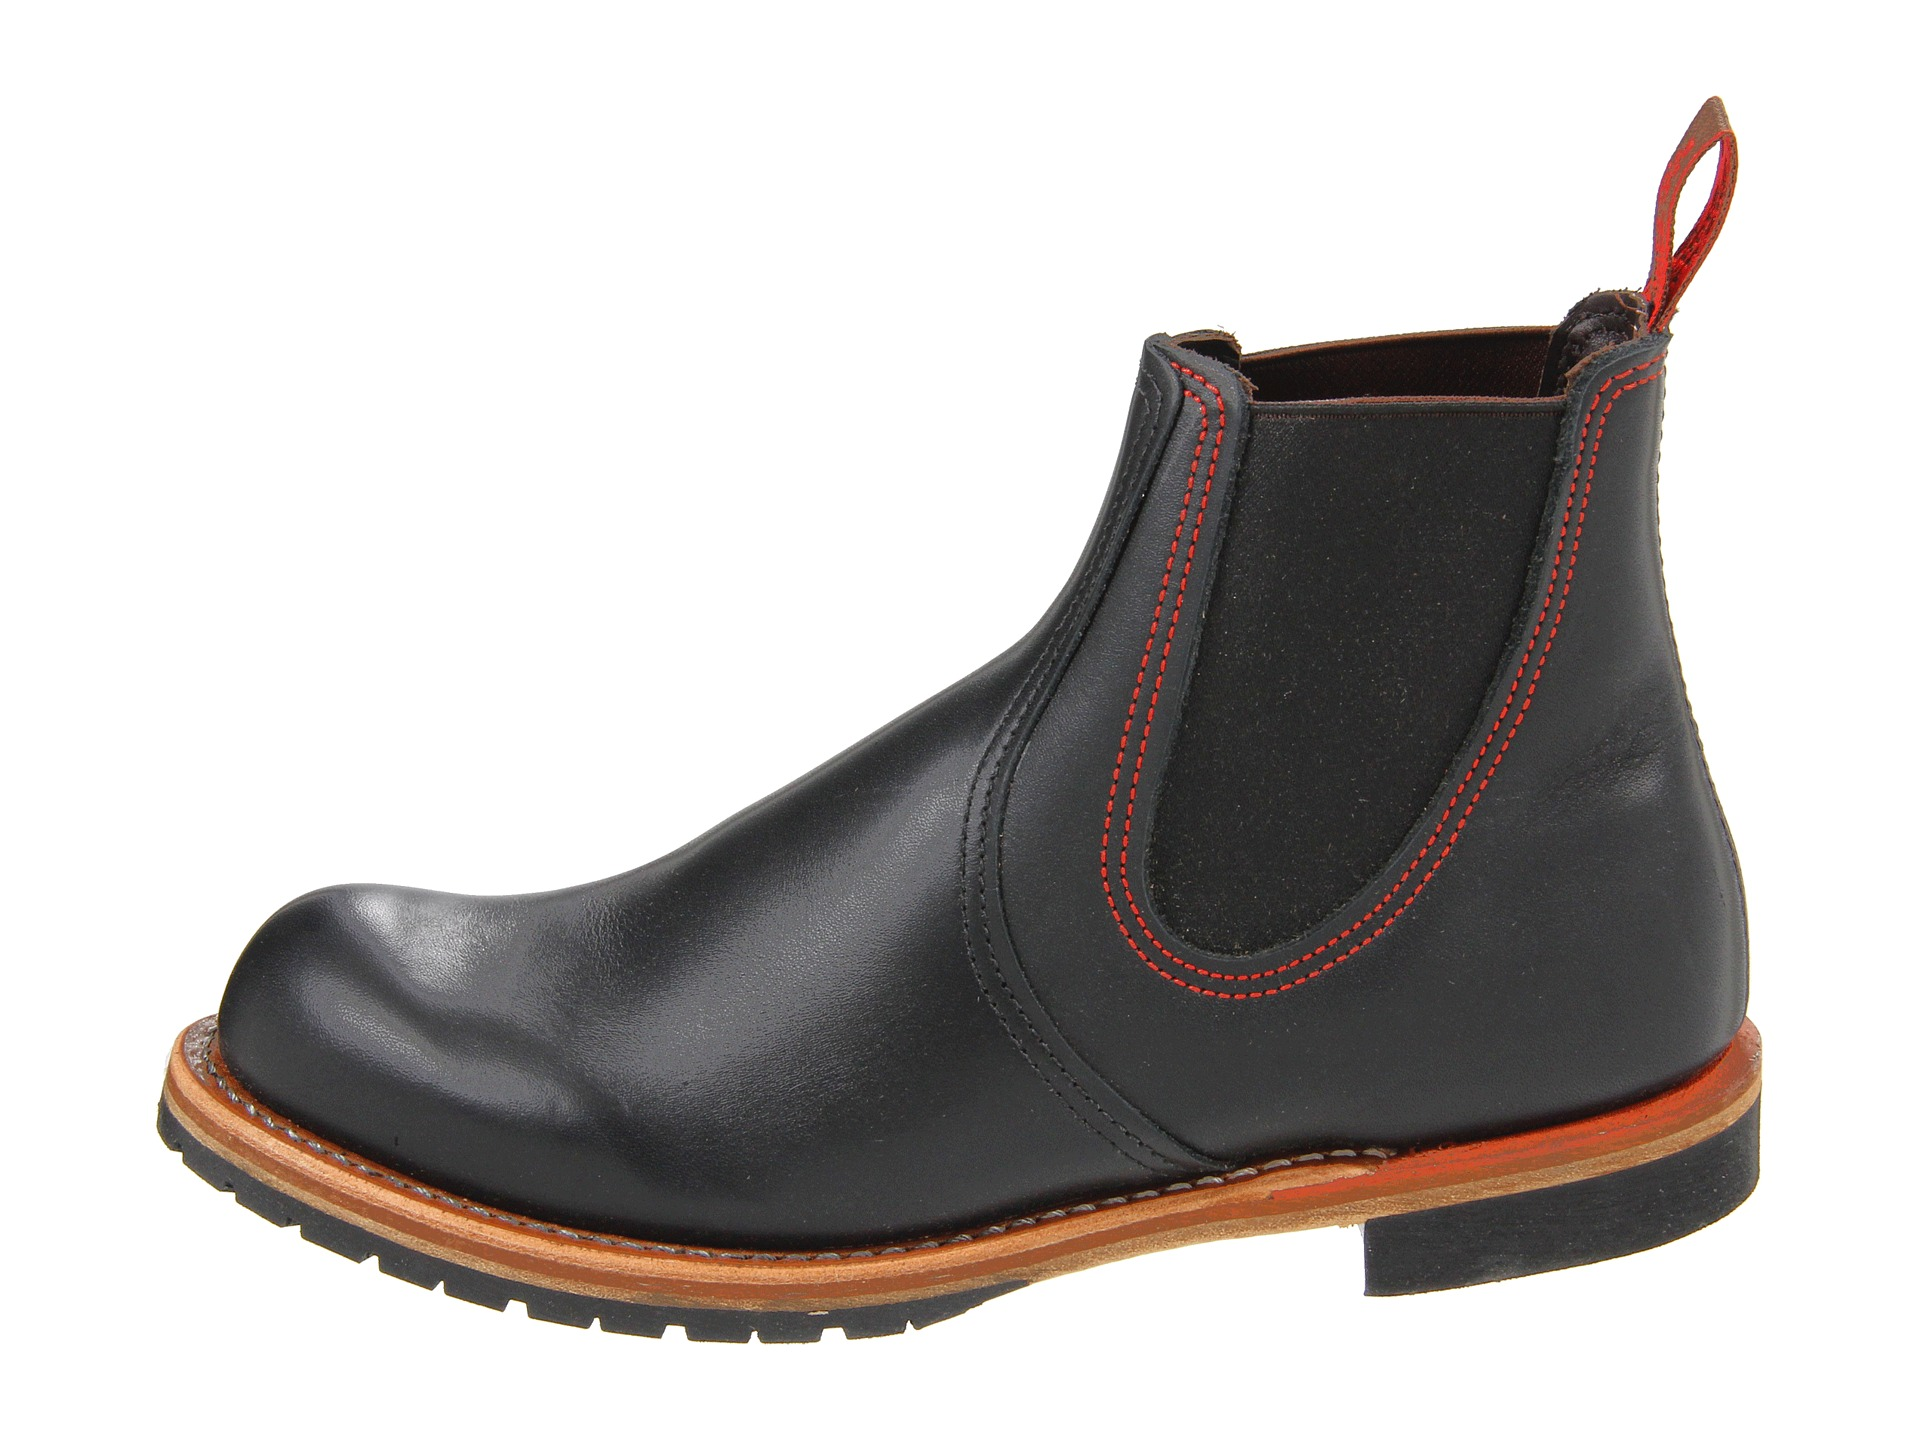 Red Wing Slip On Boots wRfcCPMa